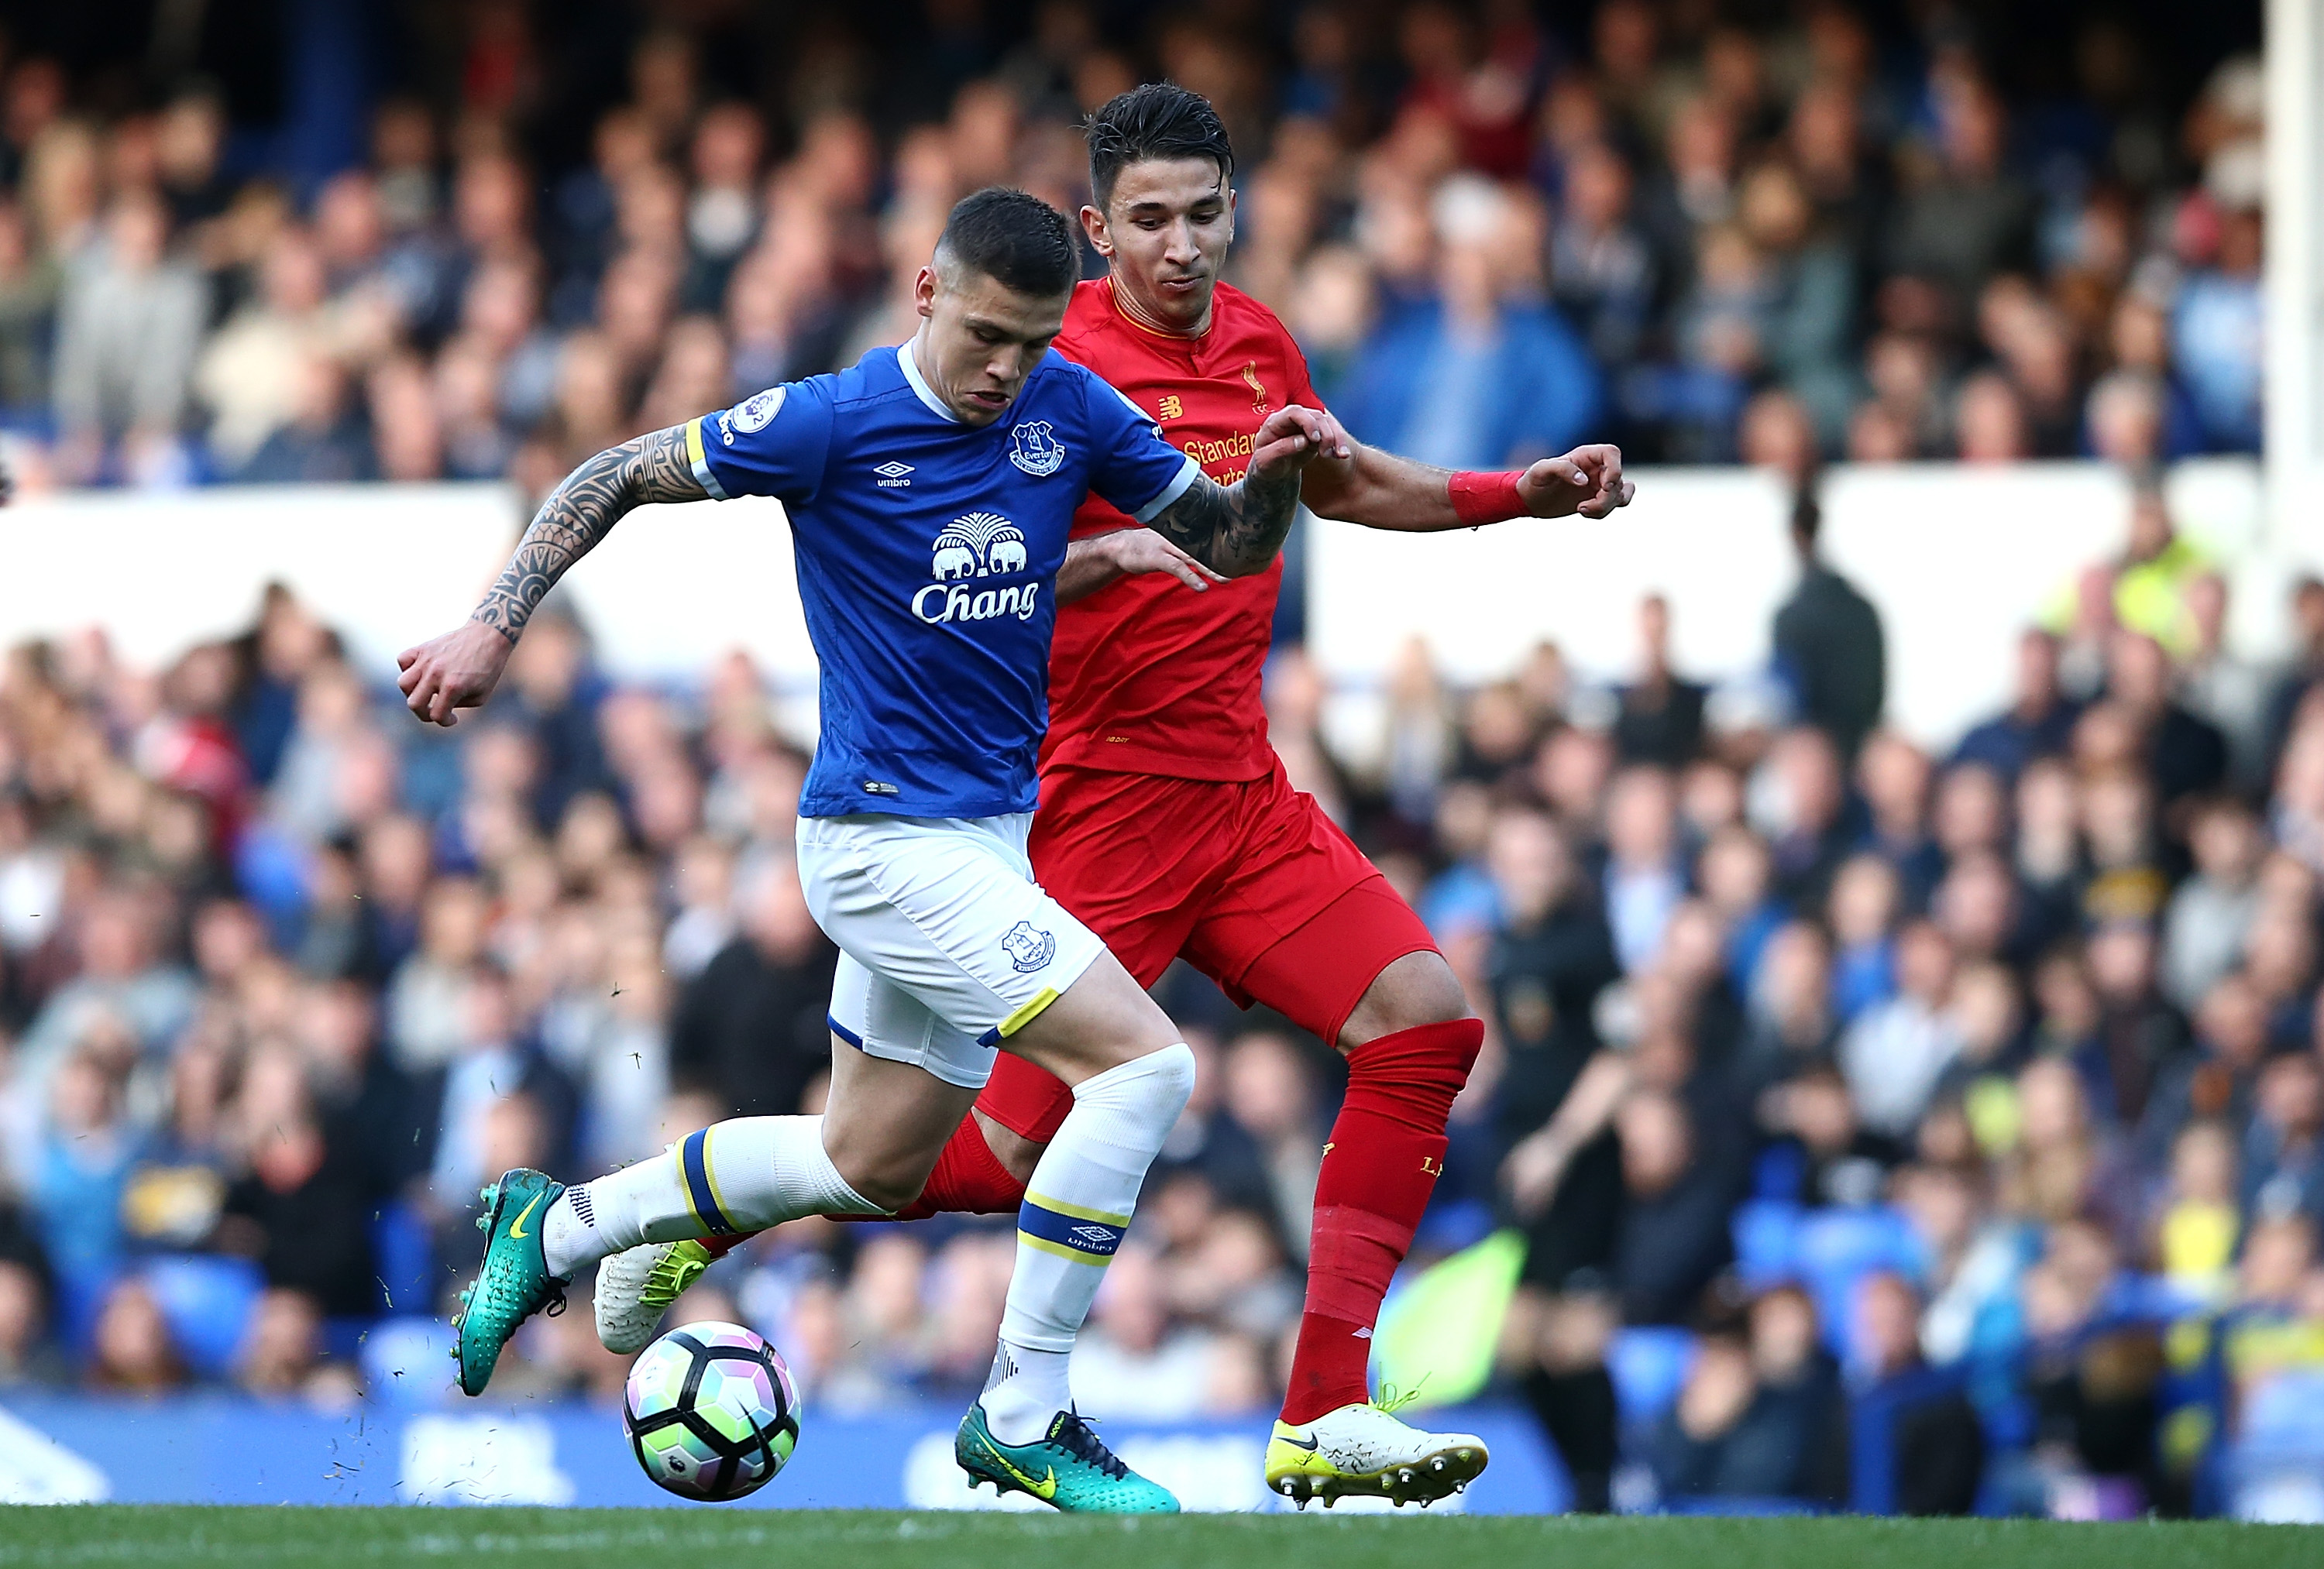 Everton's Funes Mori faces nine months out after surgery